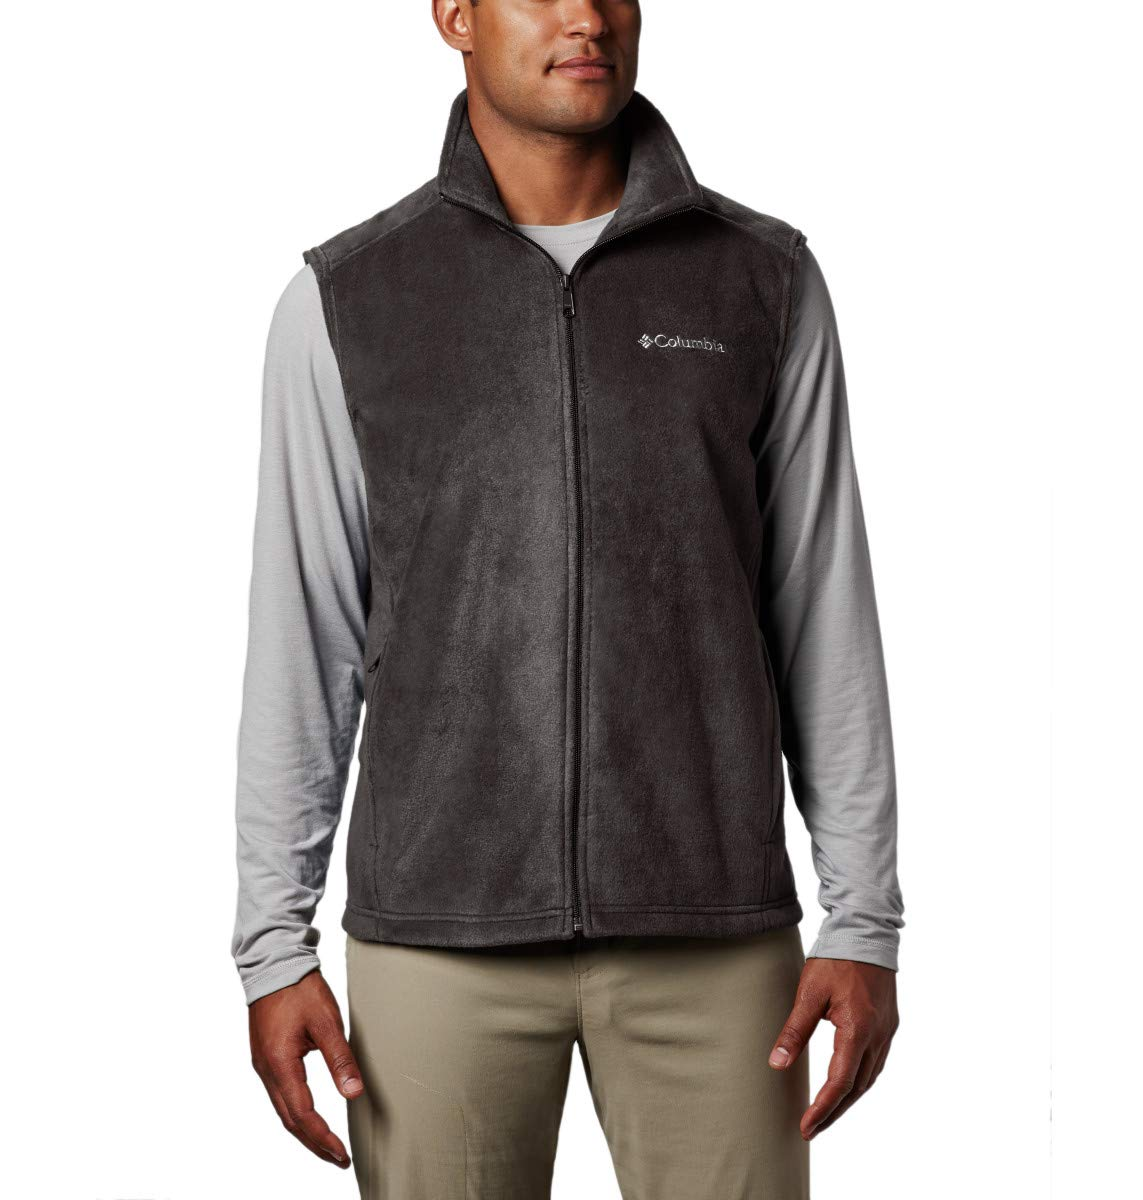 Columbia Men's Big and Tall Steens Mountain Big & Tall Vest, Buffalo, XLT by Columbia